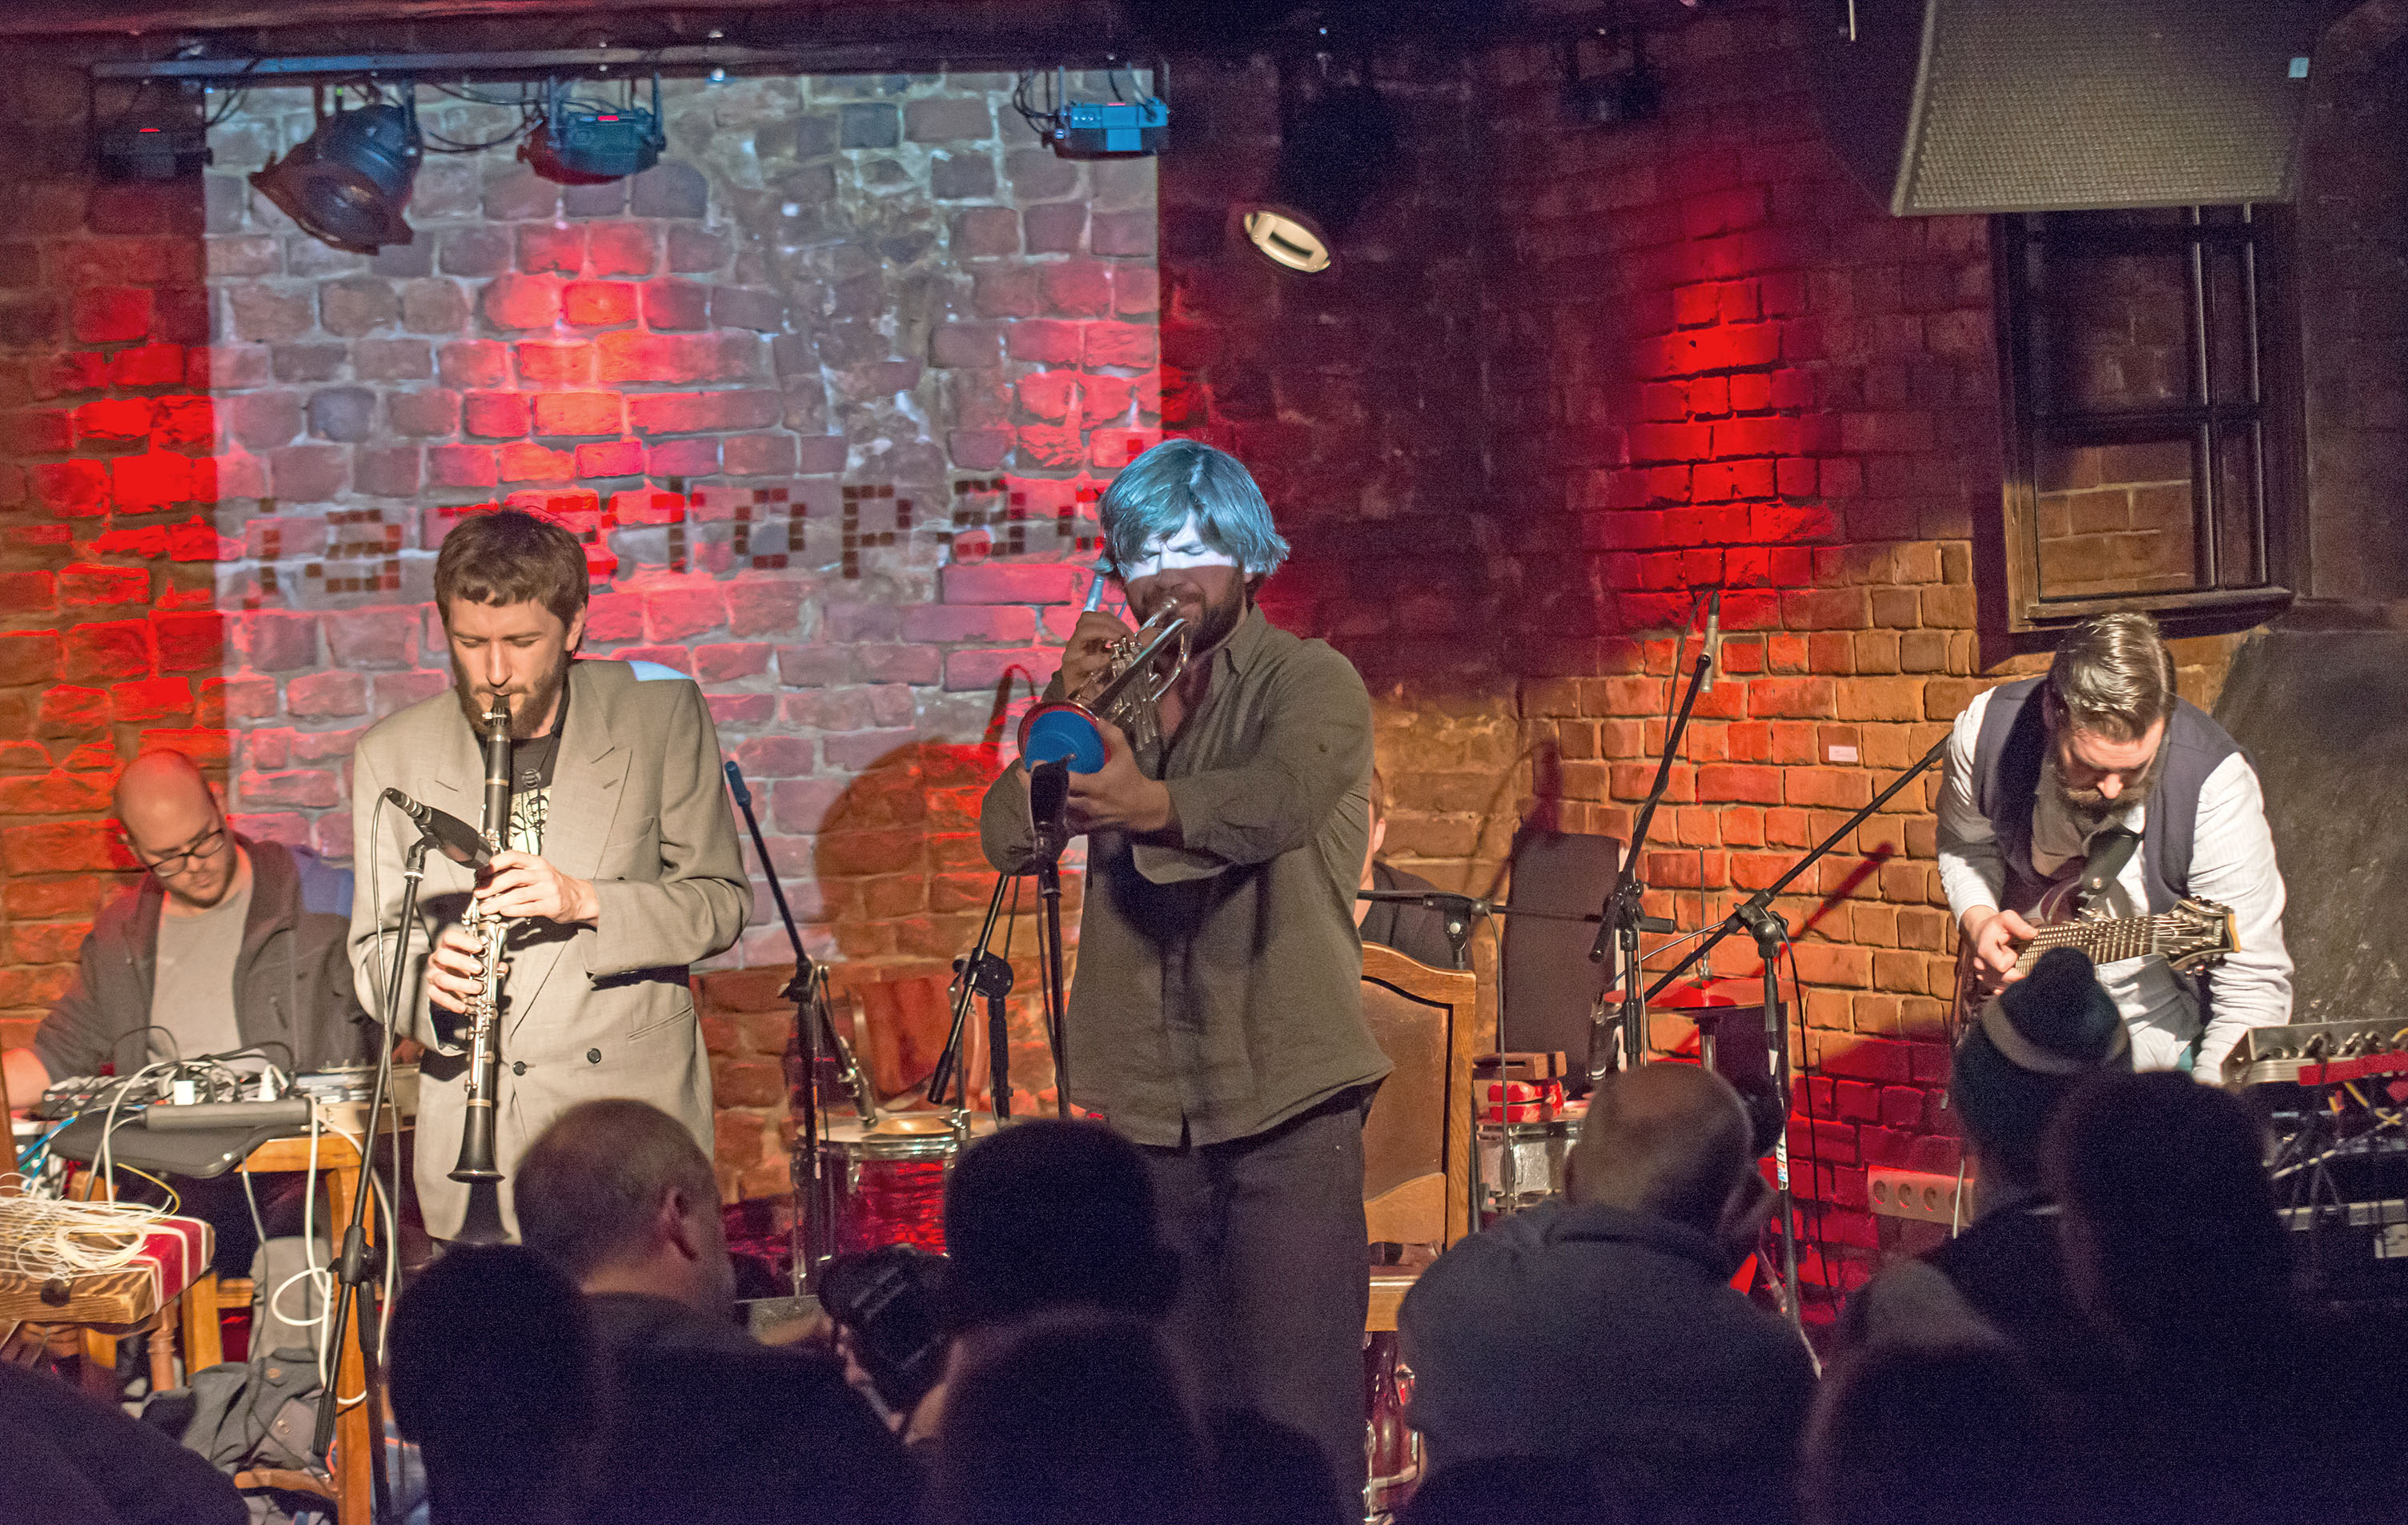 Melting pot: made in wroclaw @ jazztopad 2013